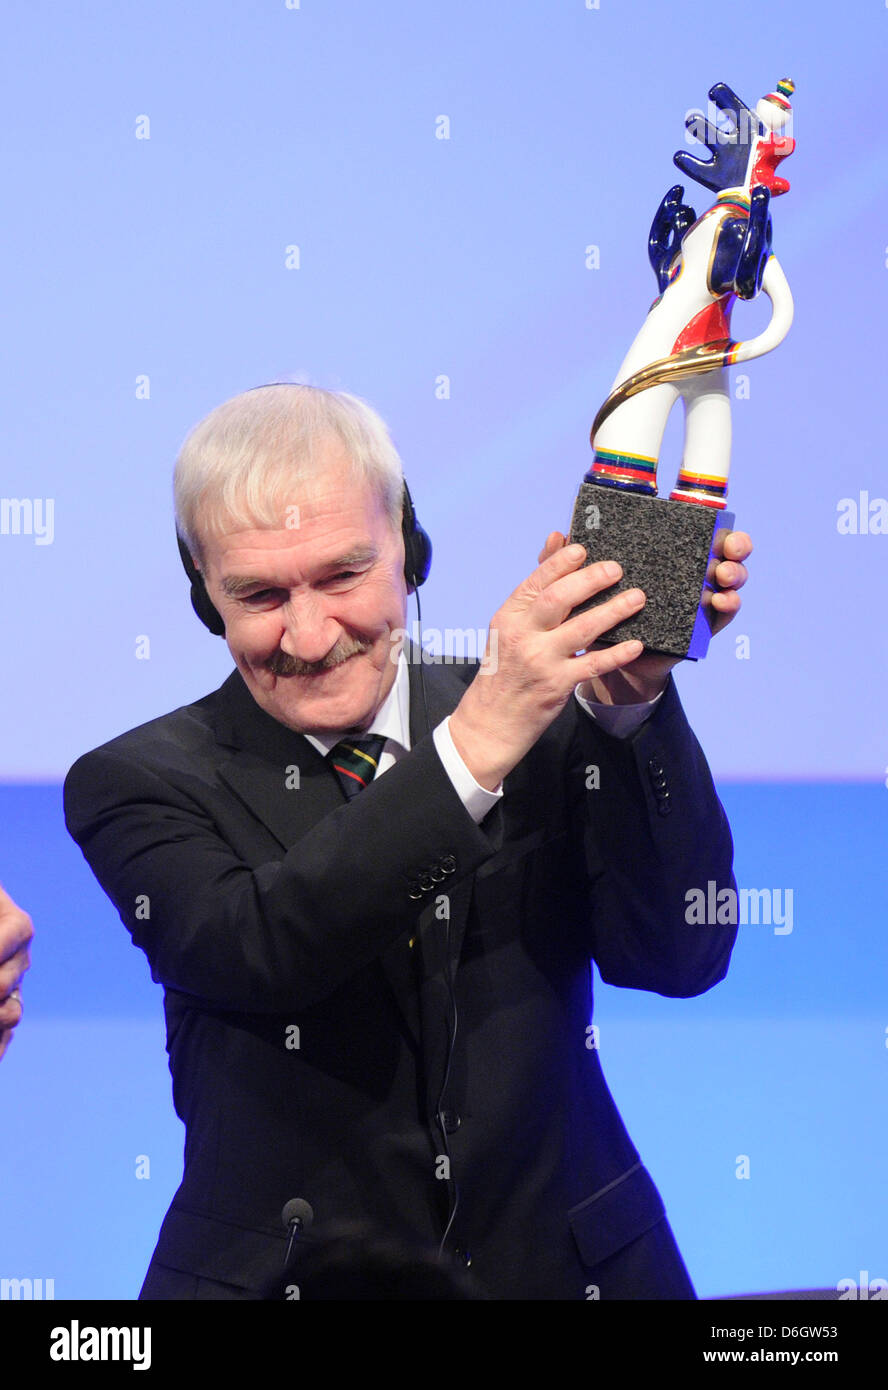 Retired Russian lieutenant colonel Stanislav Petrov poses after receiving the  German Media Prize 2011 during the - Stock Image